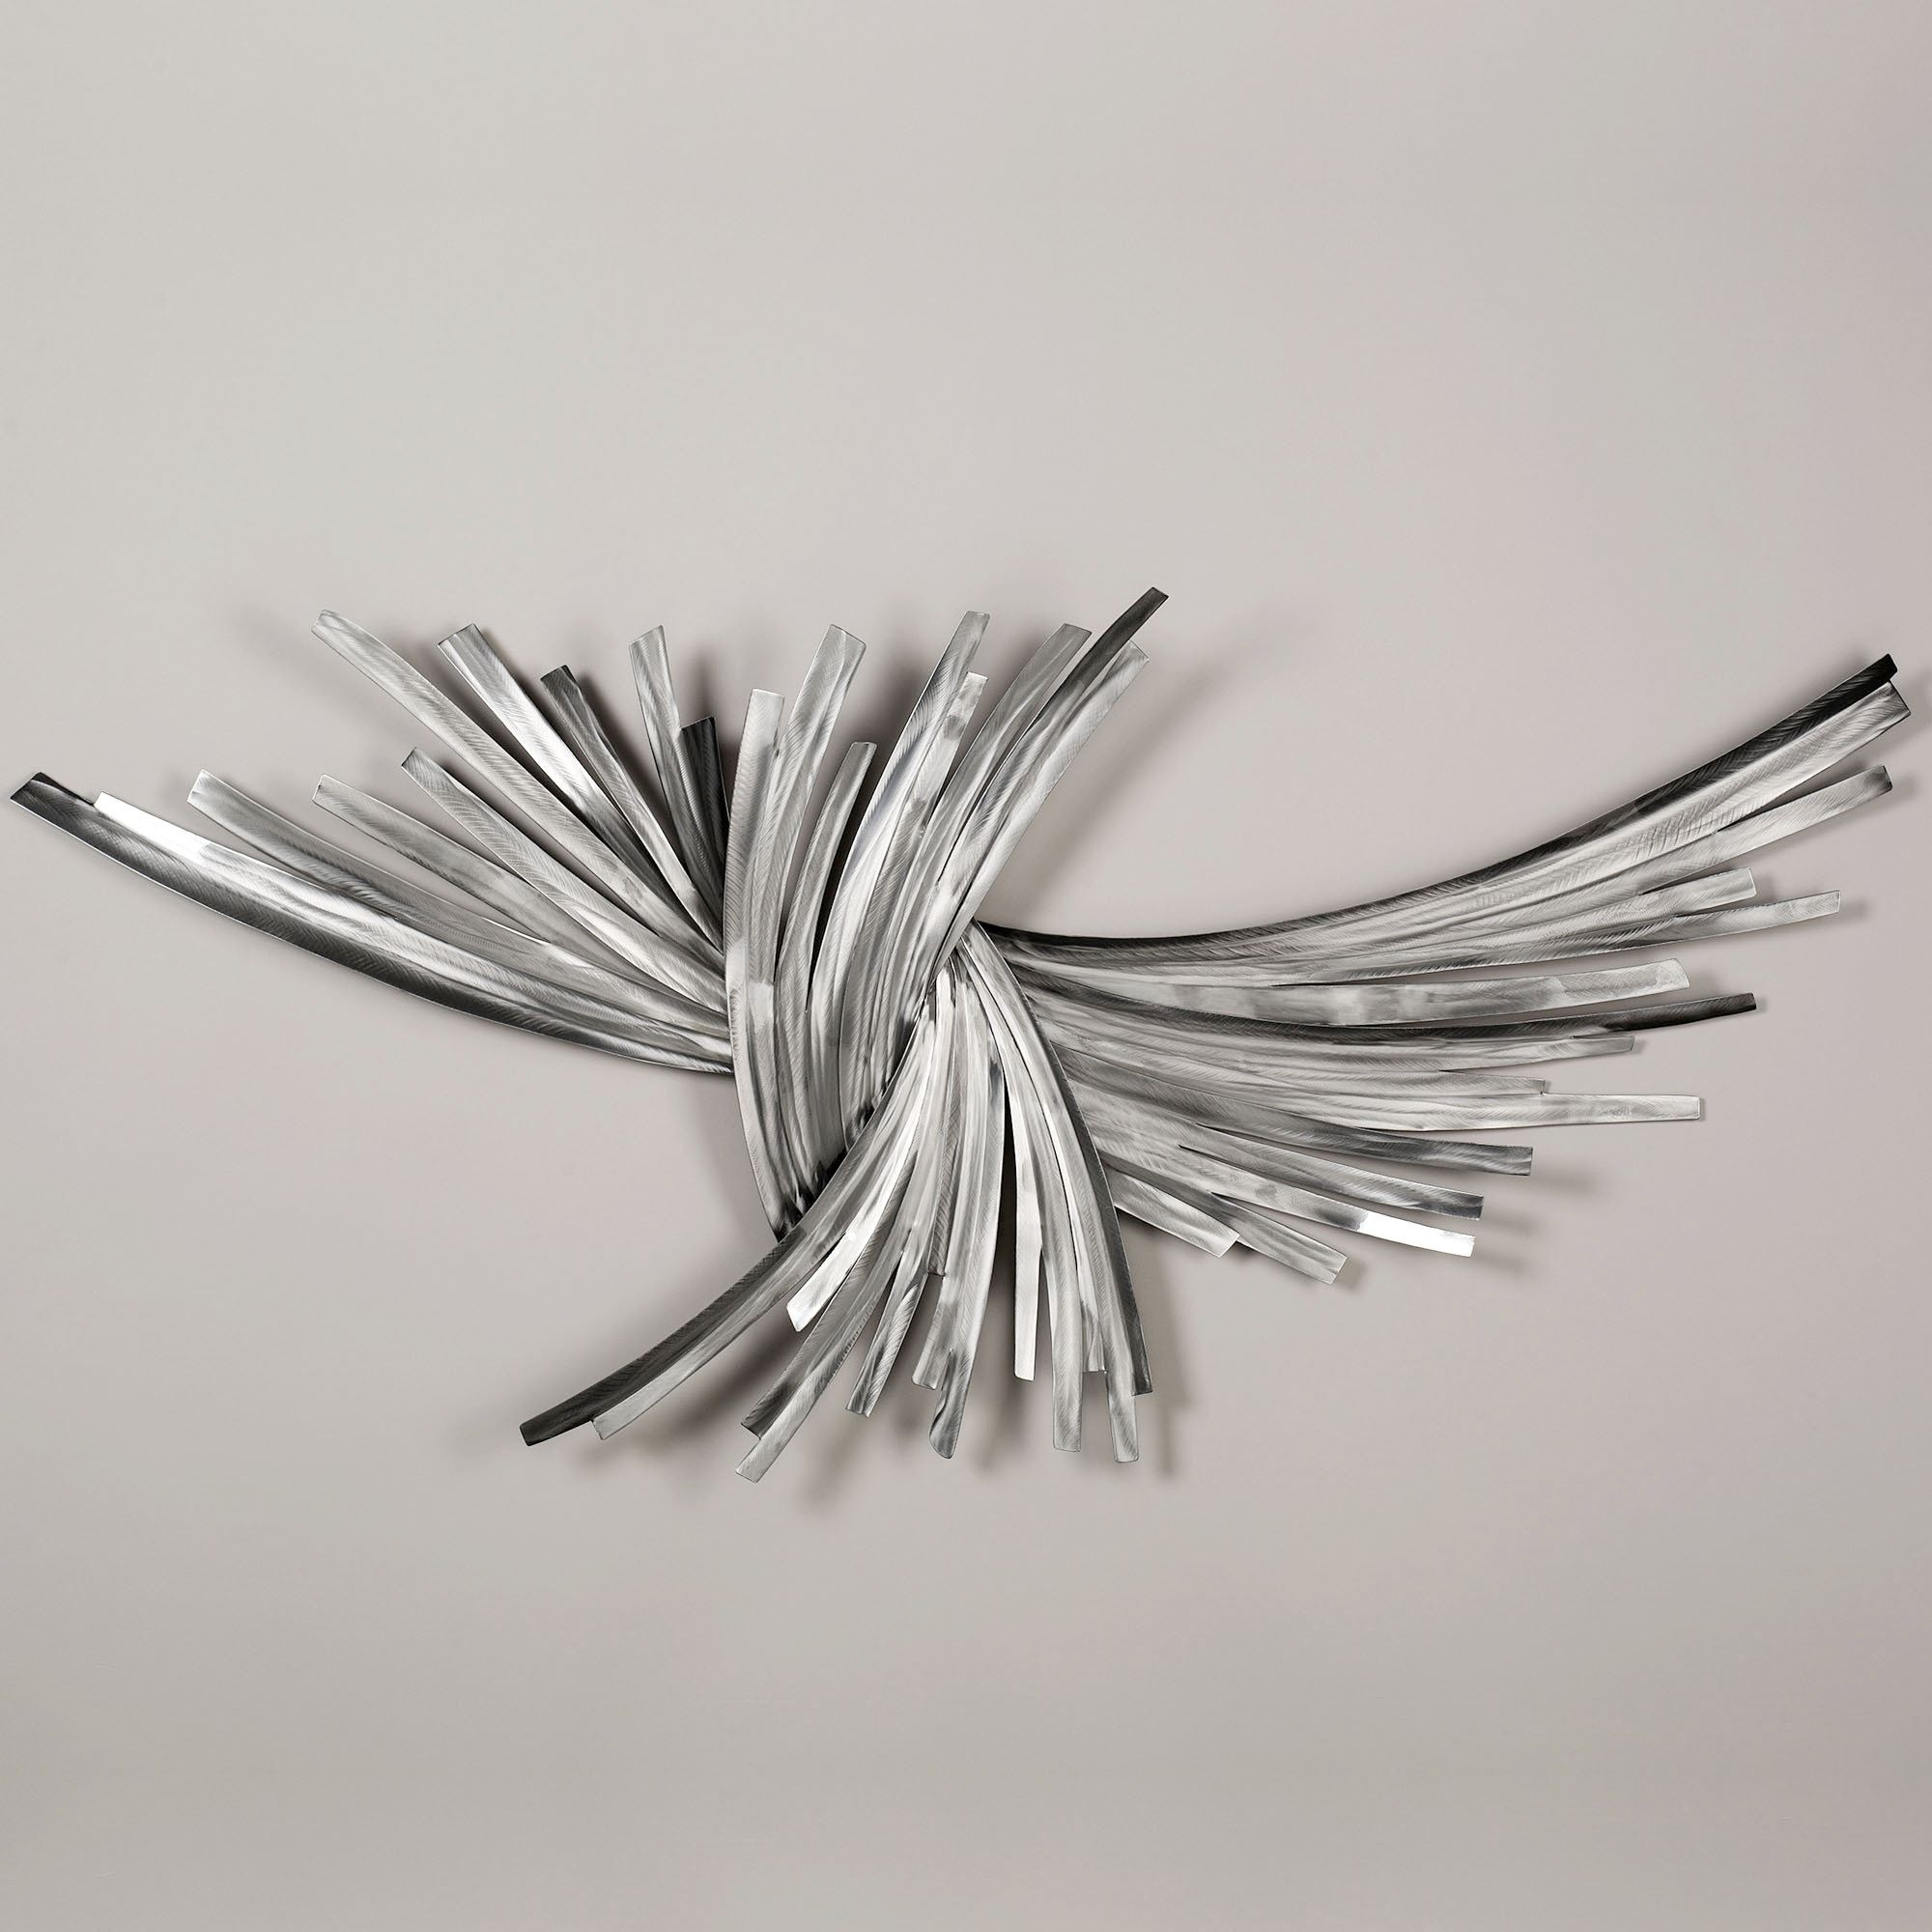 Fashionable Contemporary Metal Wall Art Sculpture In Fantastic Wall Art Touch Plus Class Metal Wall Art Diamante Mirror (View 6 of 15)